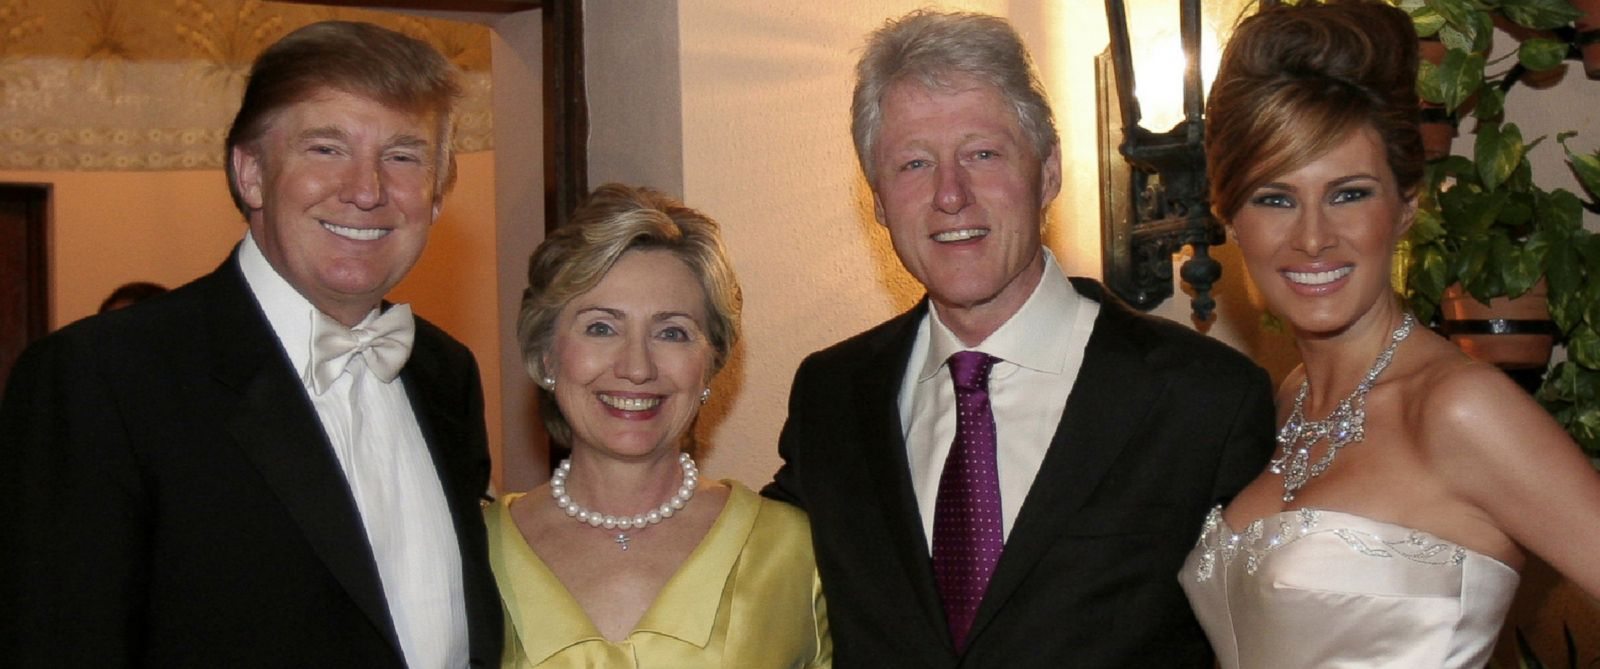 PHOTO: Donald Trump and Melania Trump with Hillary Rodham Clinton and Bill Clinton at their reception held at The Mar-a-Lago Club, Jan. 22, 2005, in Palm Beach, Fla.